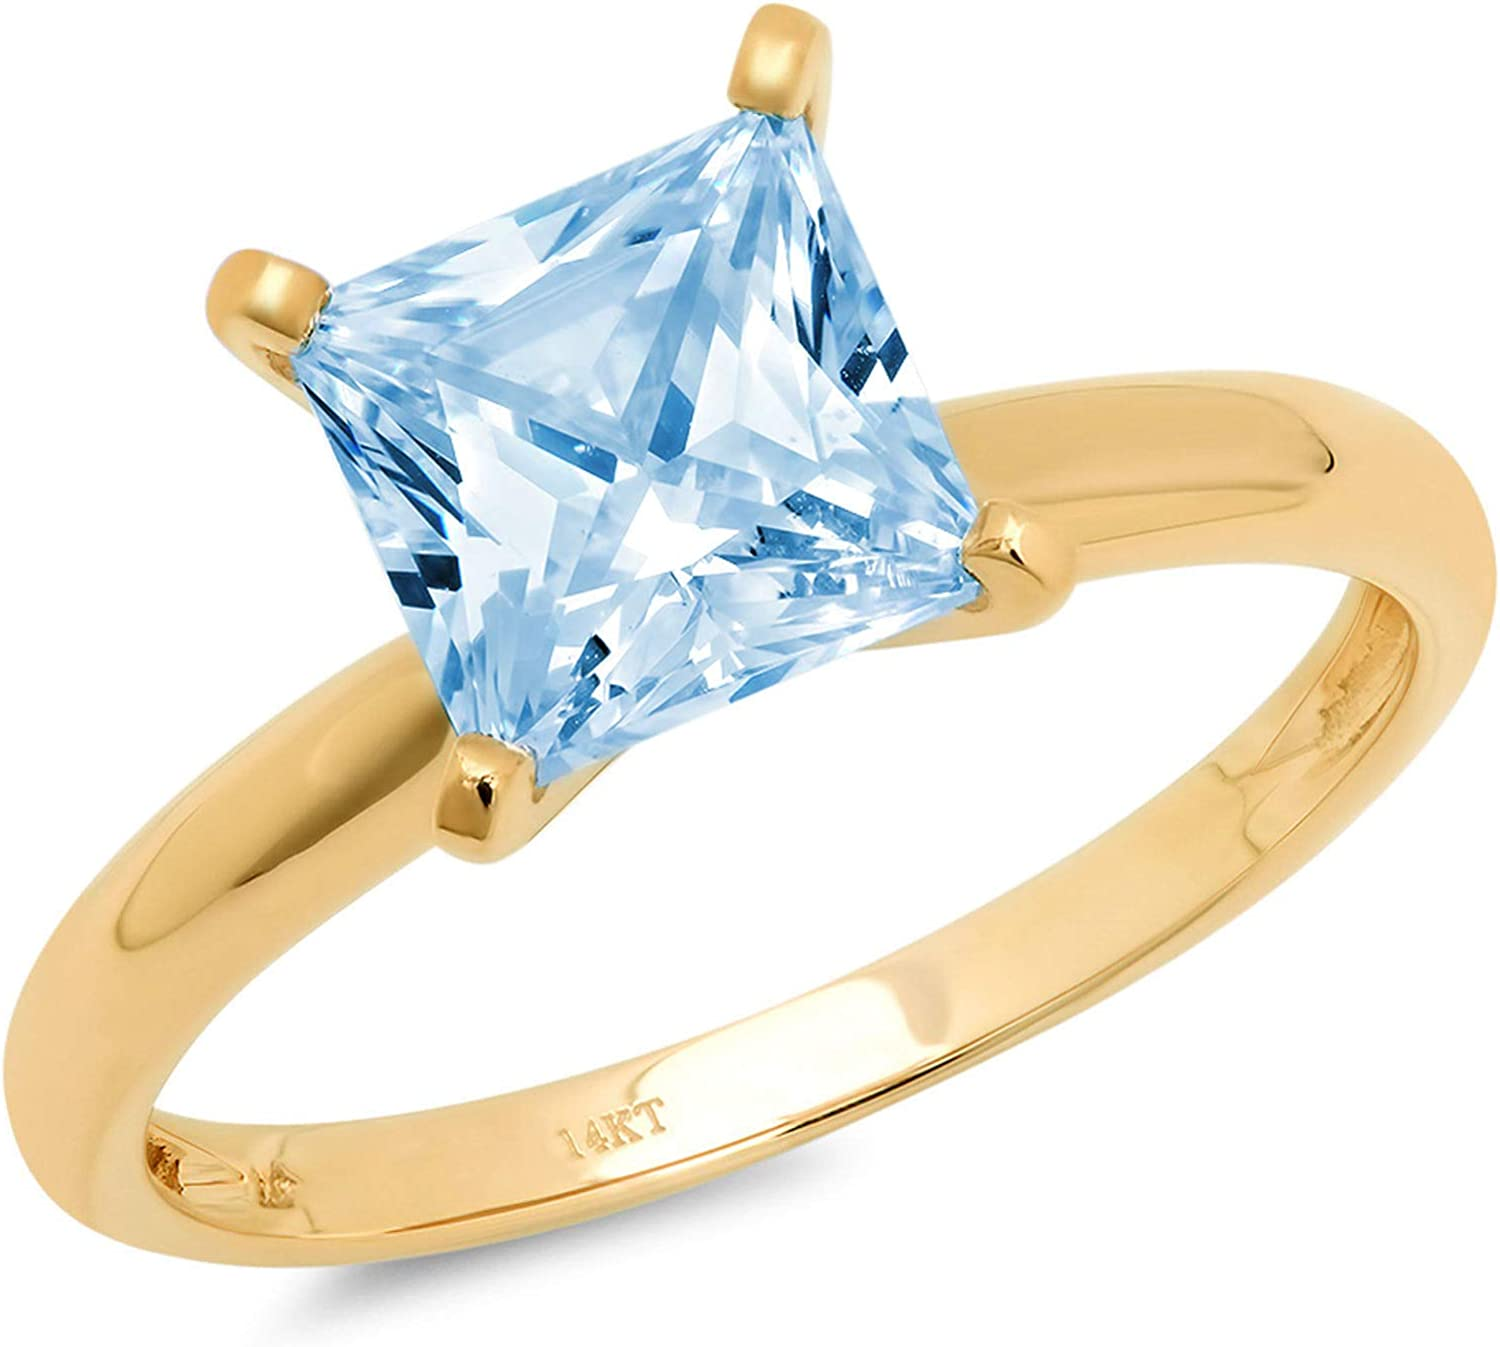 2.50ct Brilliant Princess Cut Solitaire Aquamarine Blue Simulated Diamond CZ Excellent VVS1 D 4-Prong Engagement Wedding Bridal Promise Anniversary Ring Solid Real 14k Yellow Gold for Women